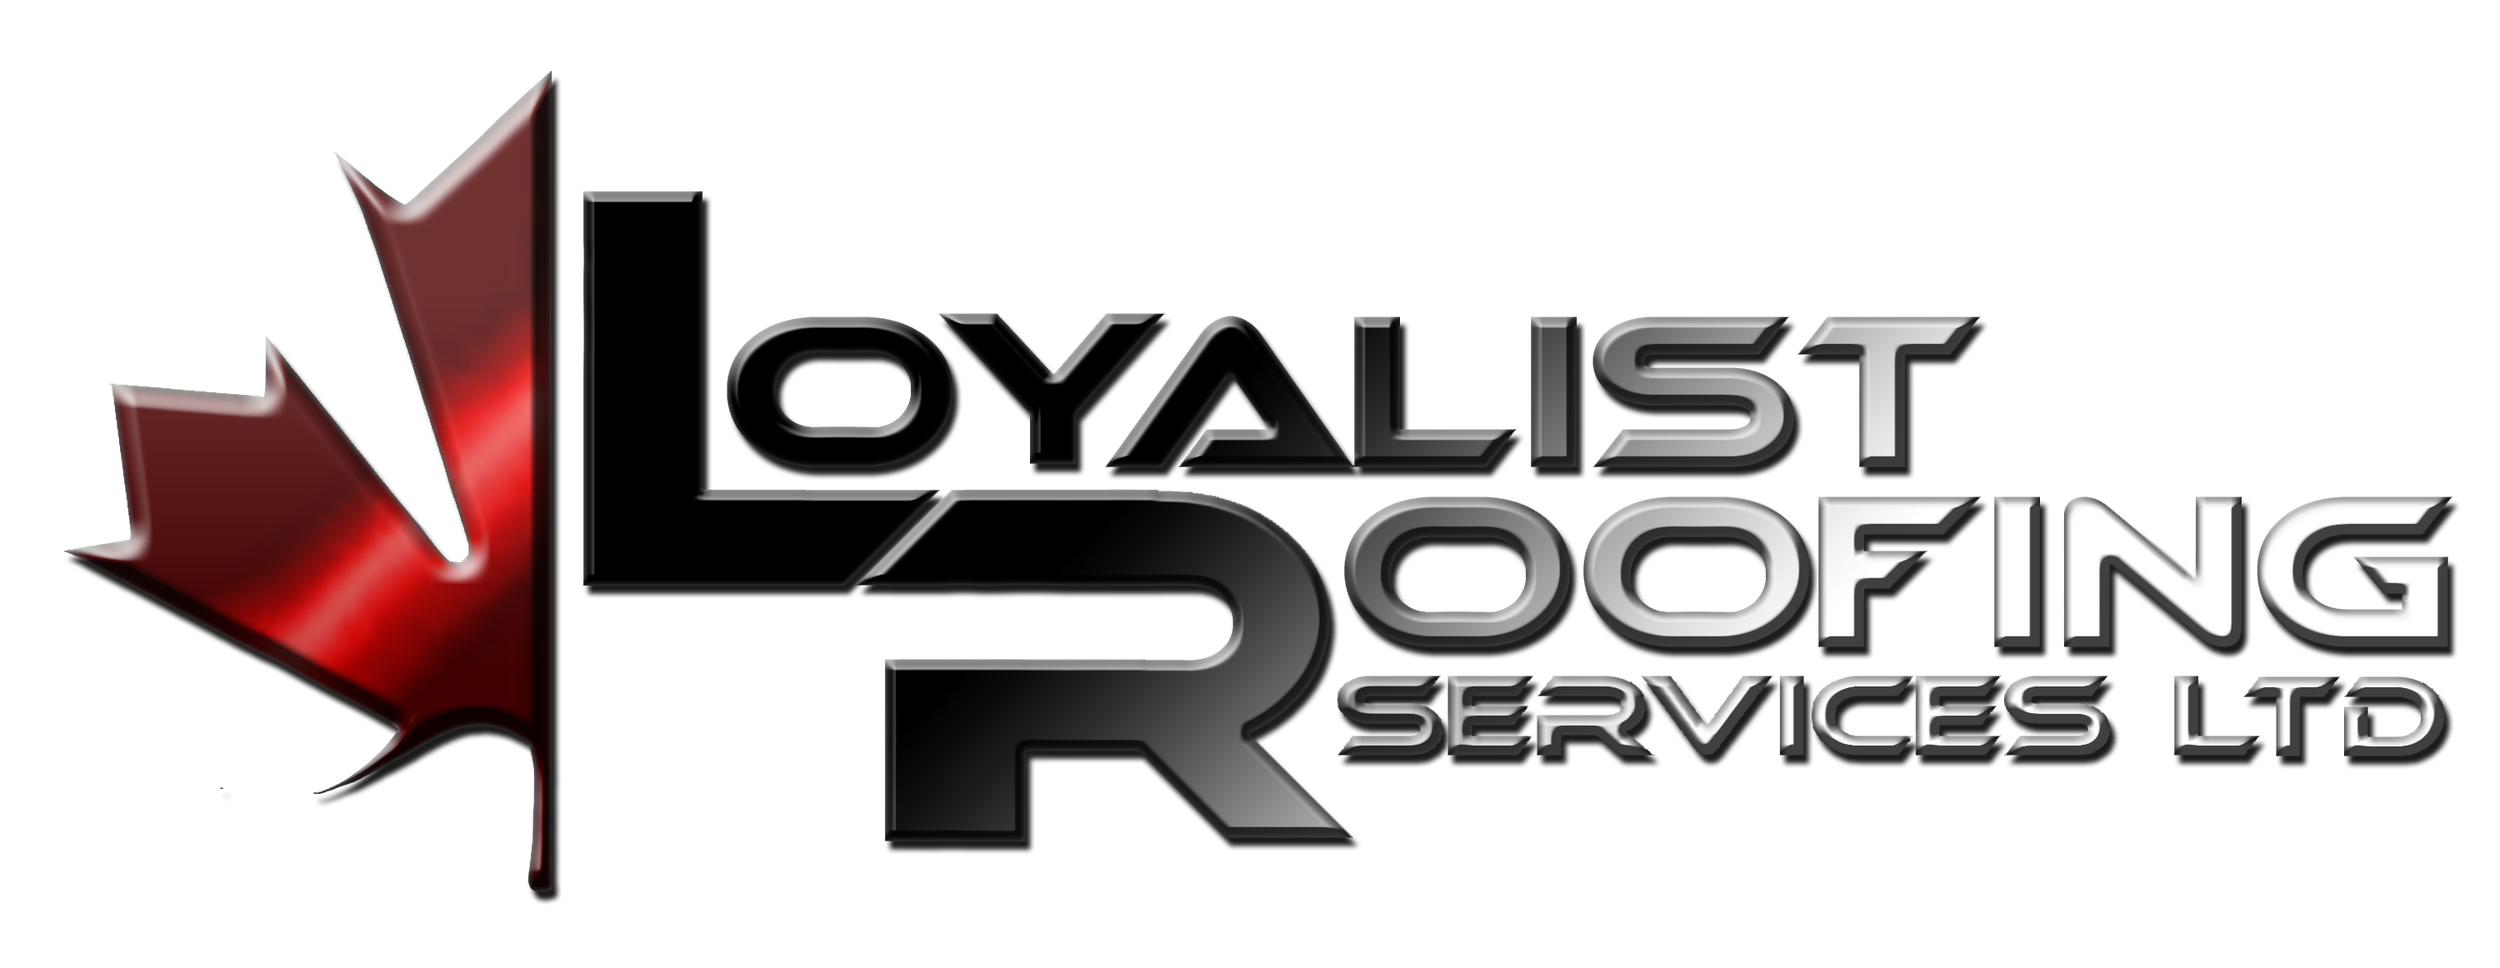 Loyalist Roofing Services Ltd logo